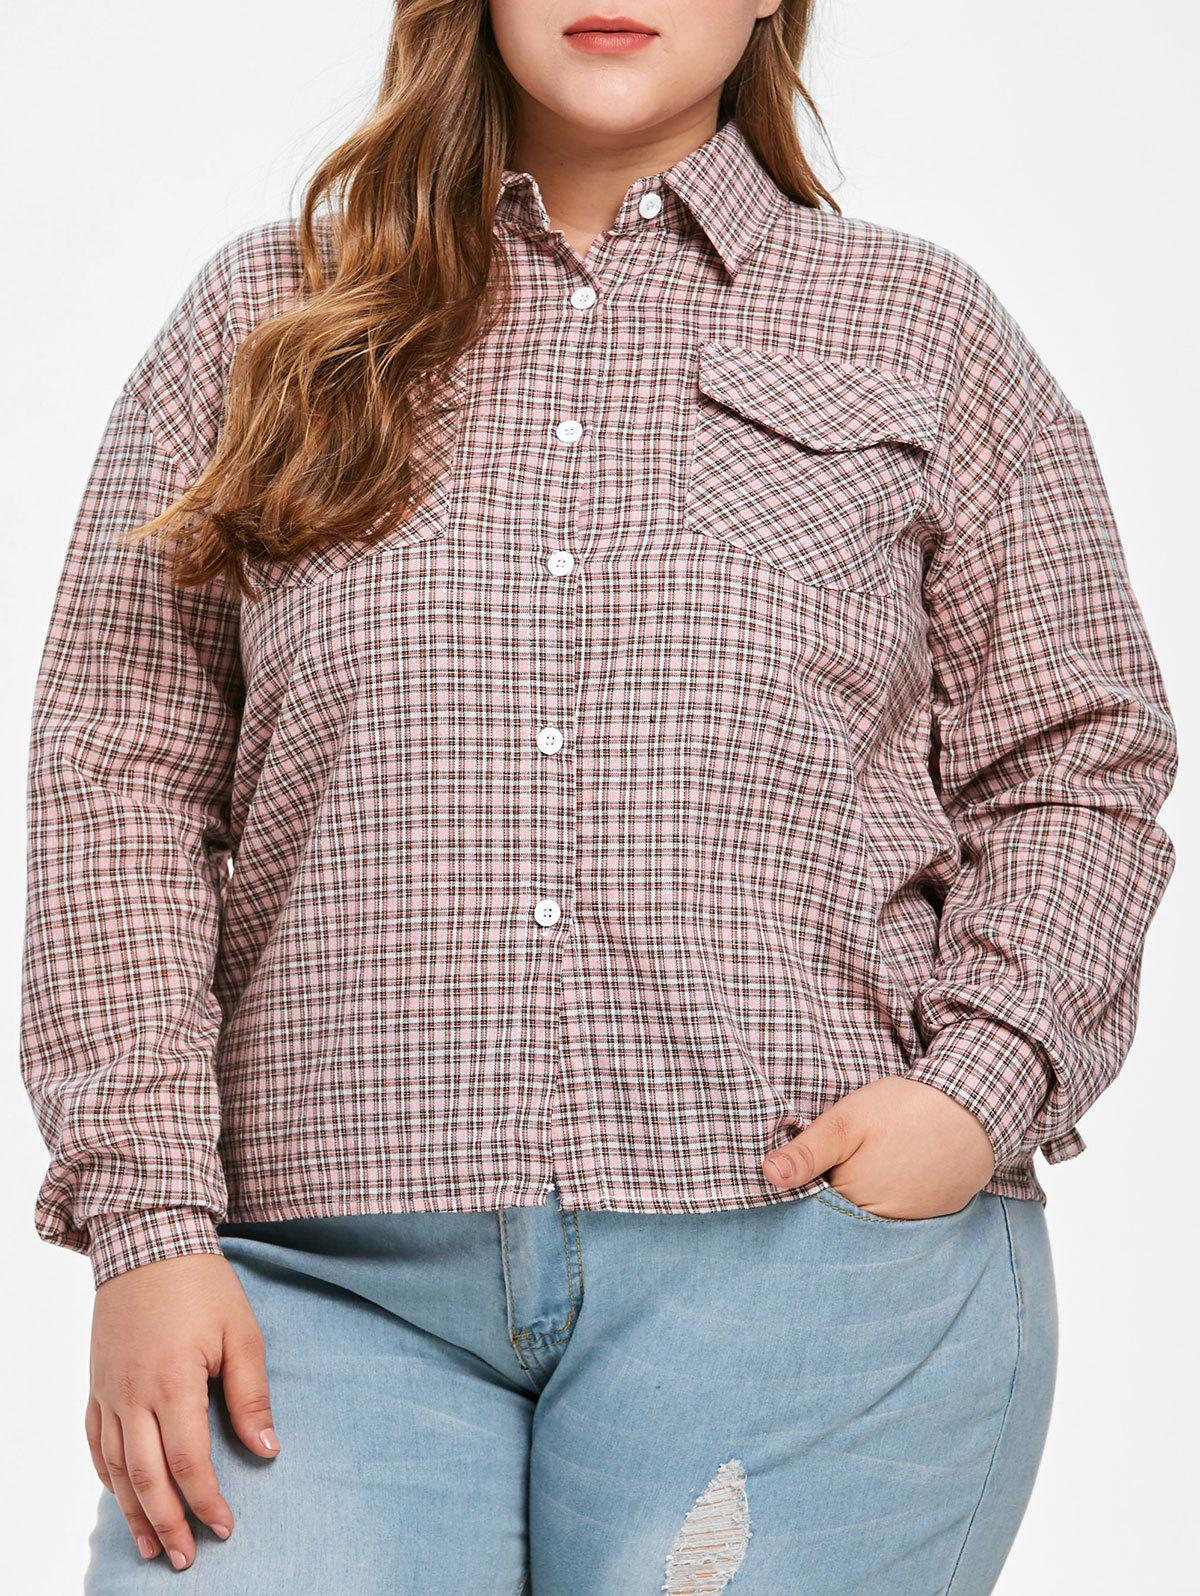 New Flounce Trim Plus Size Gingham Shirt